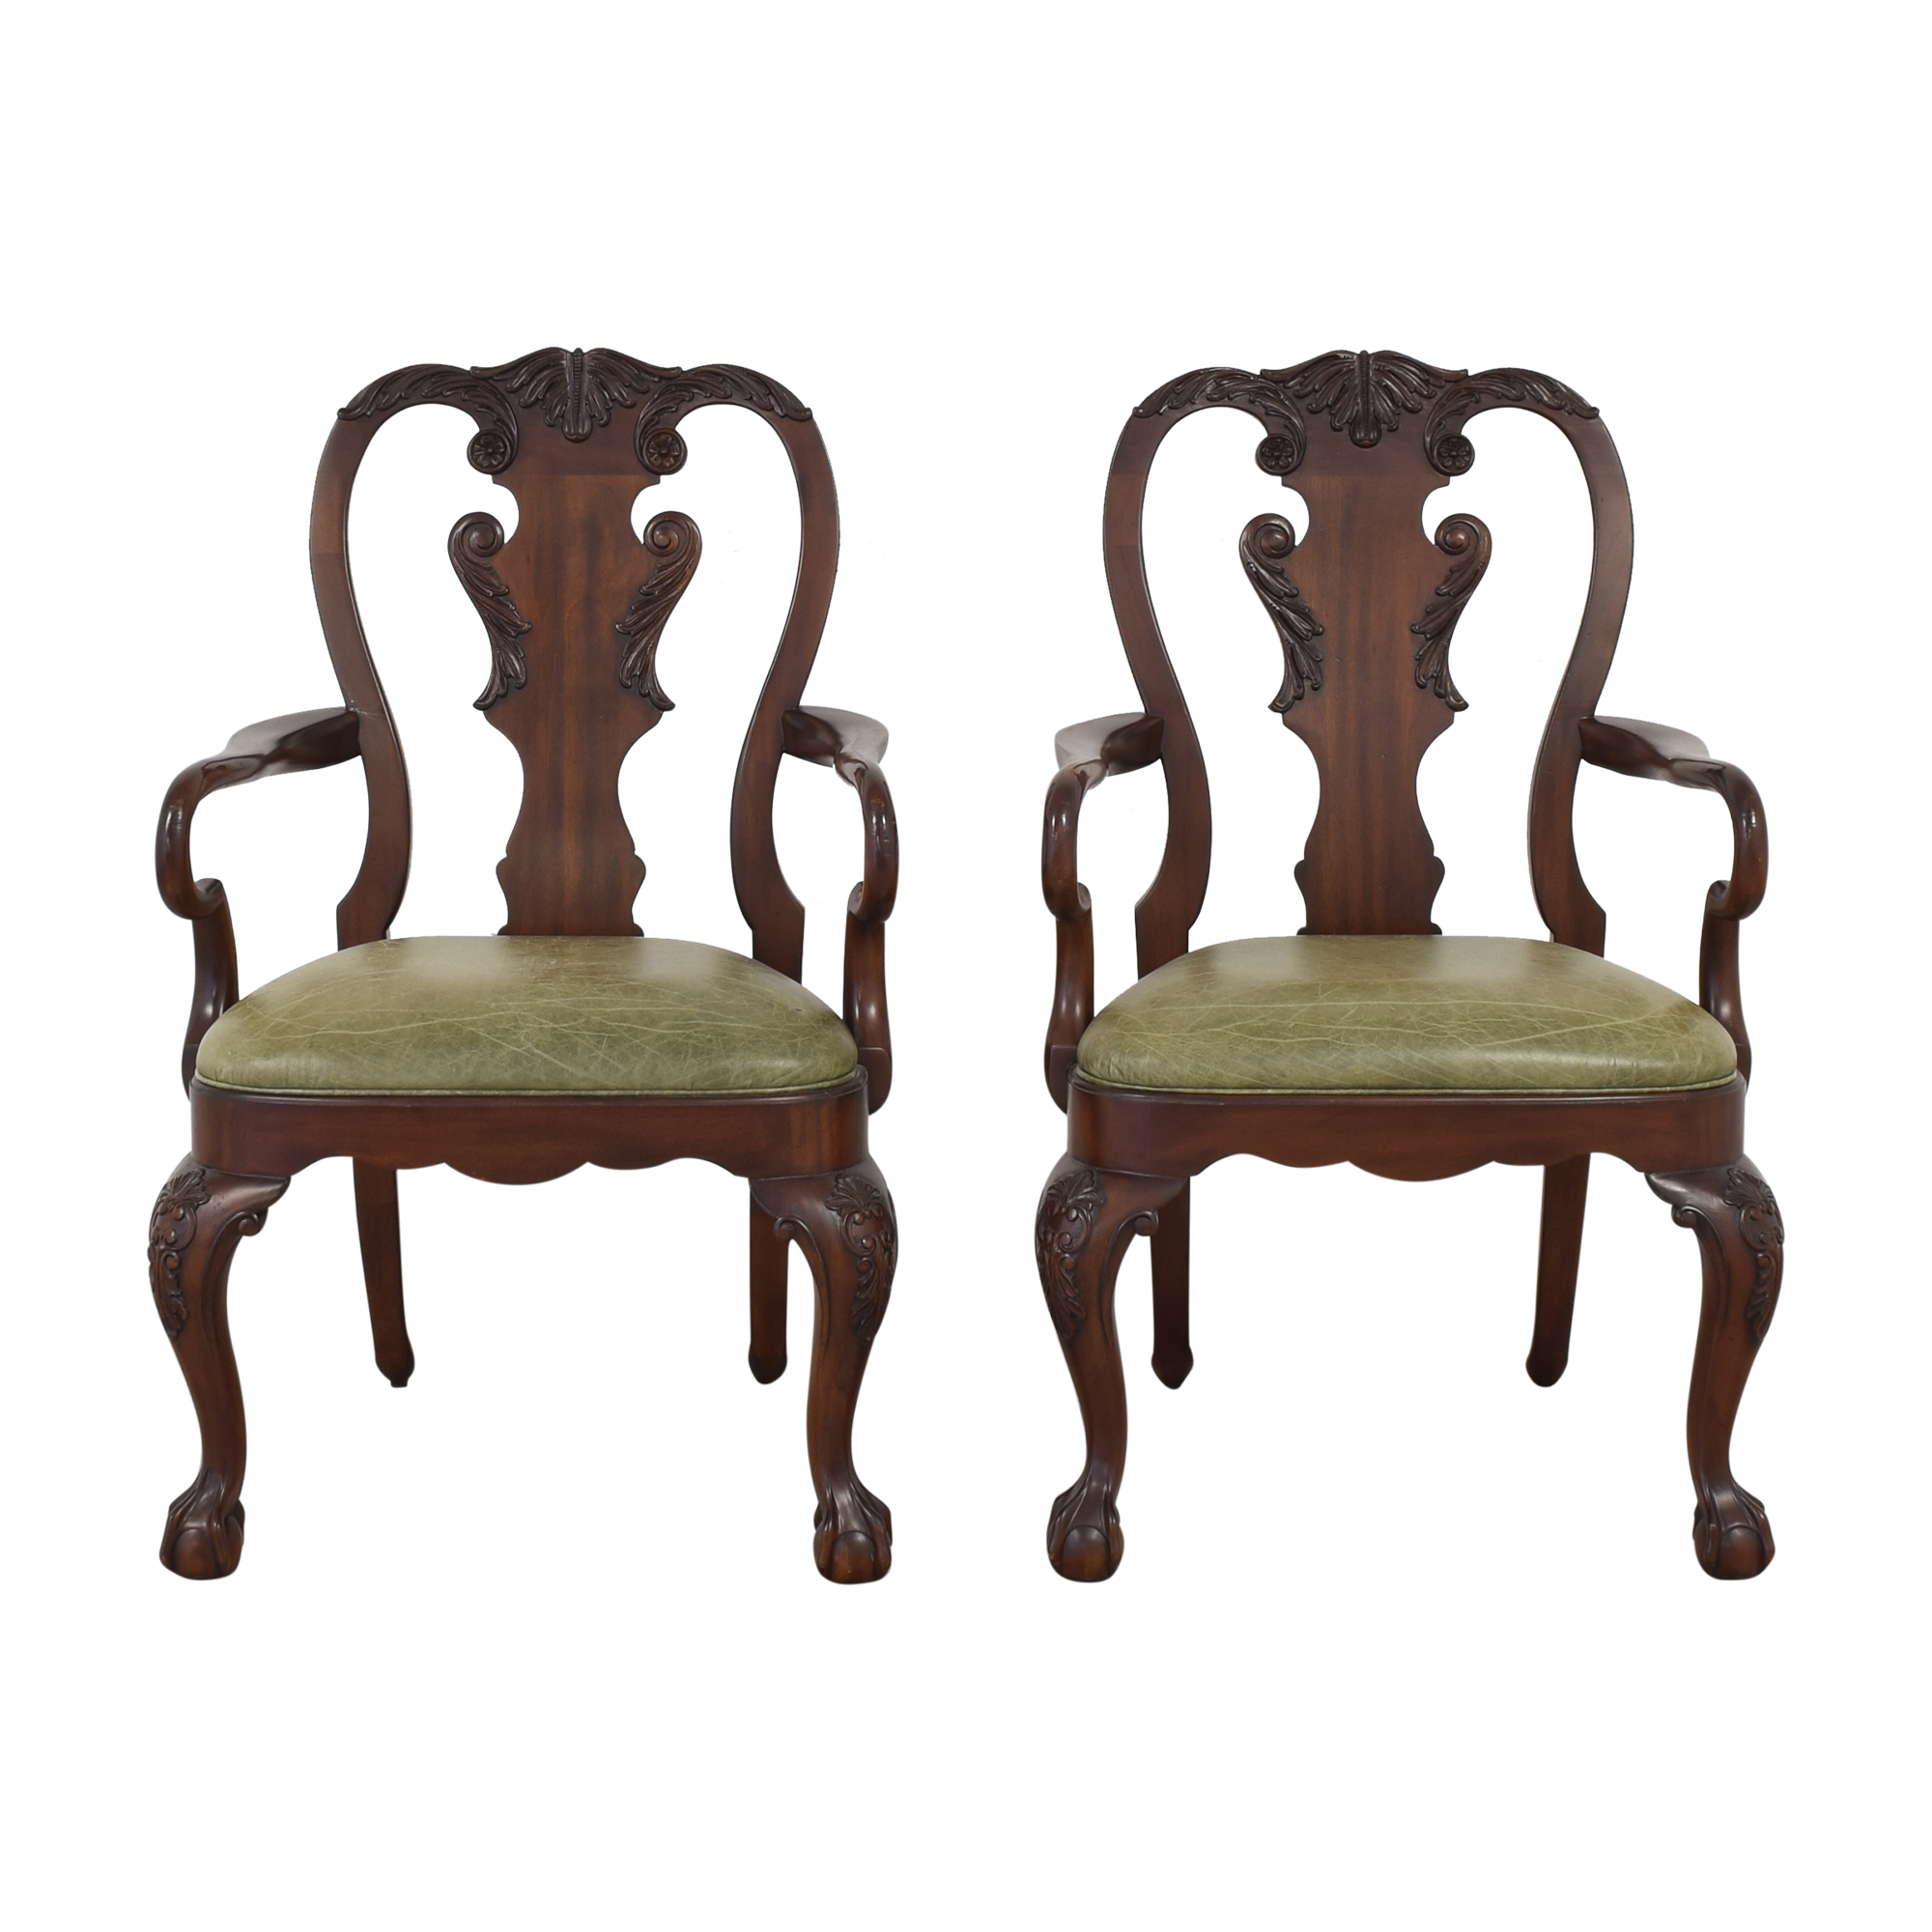 Ethan Allen Ethan Allen Queen Anne Dining Arm Chairs nj